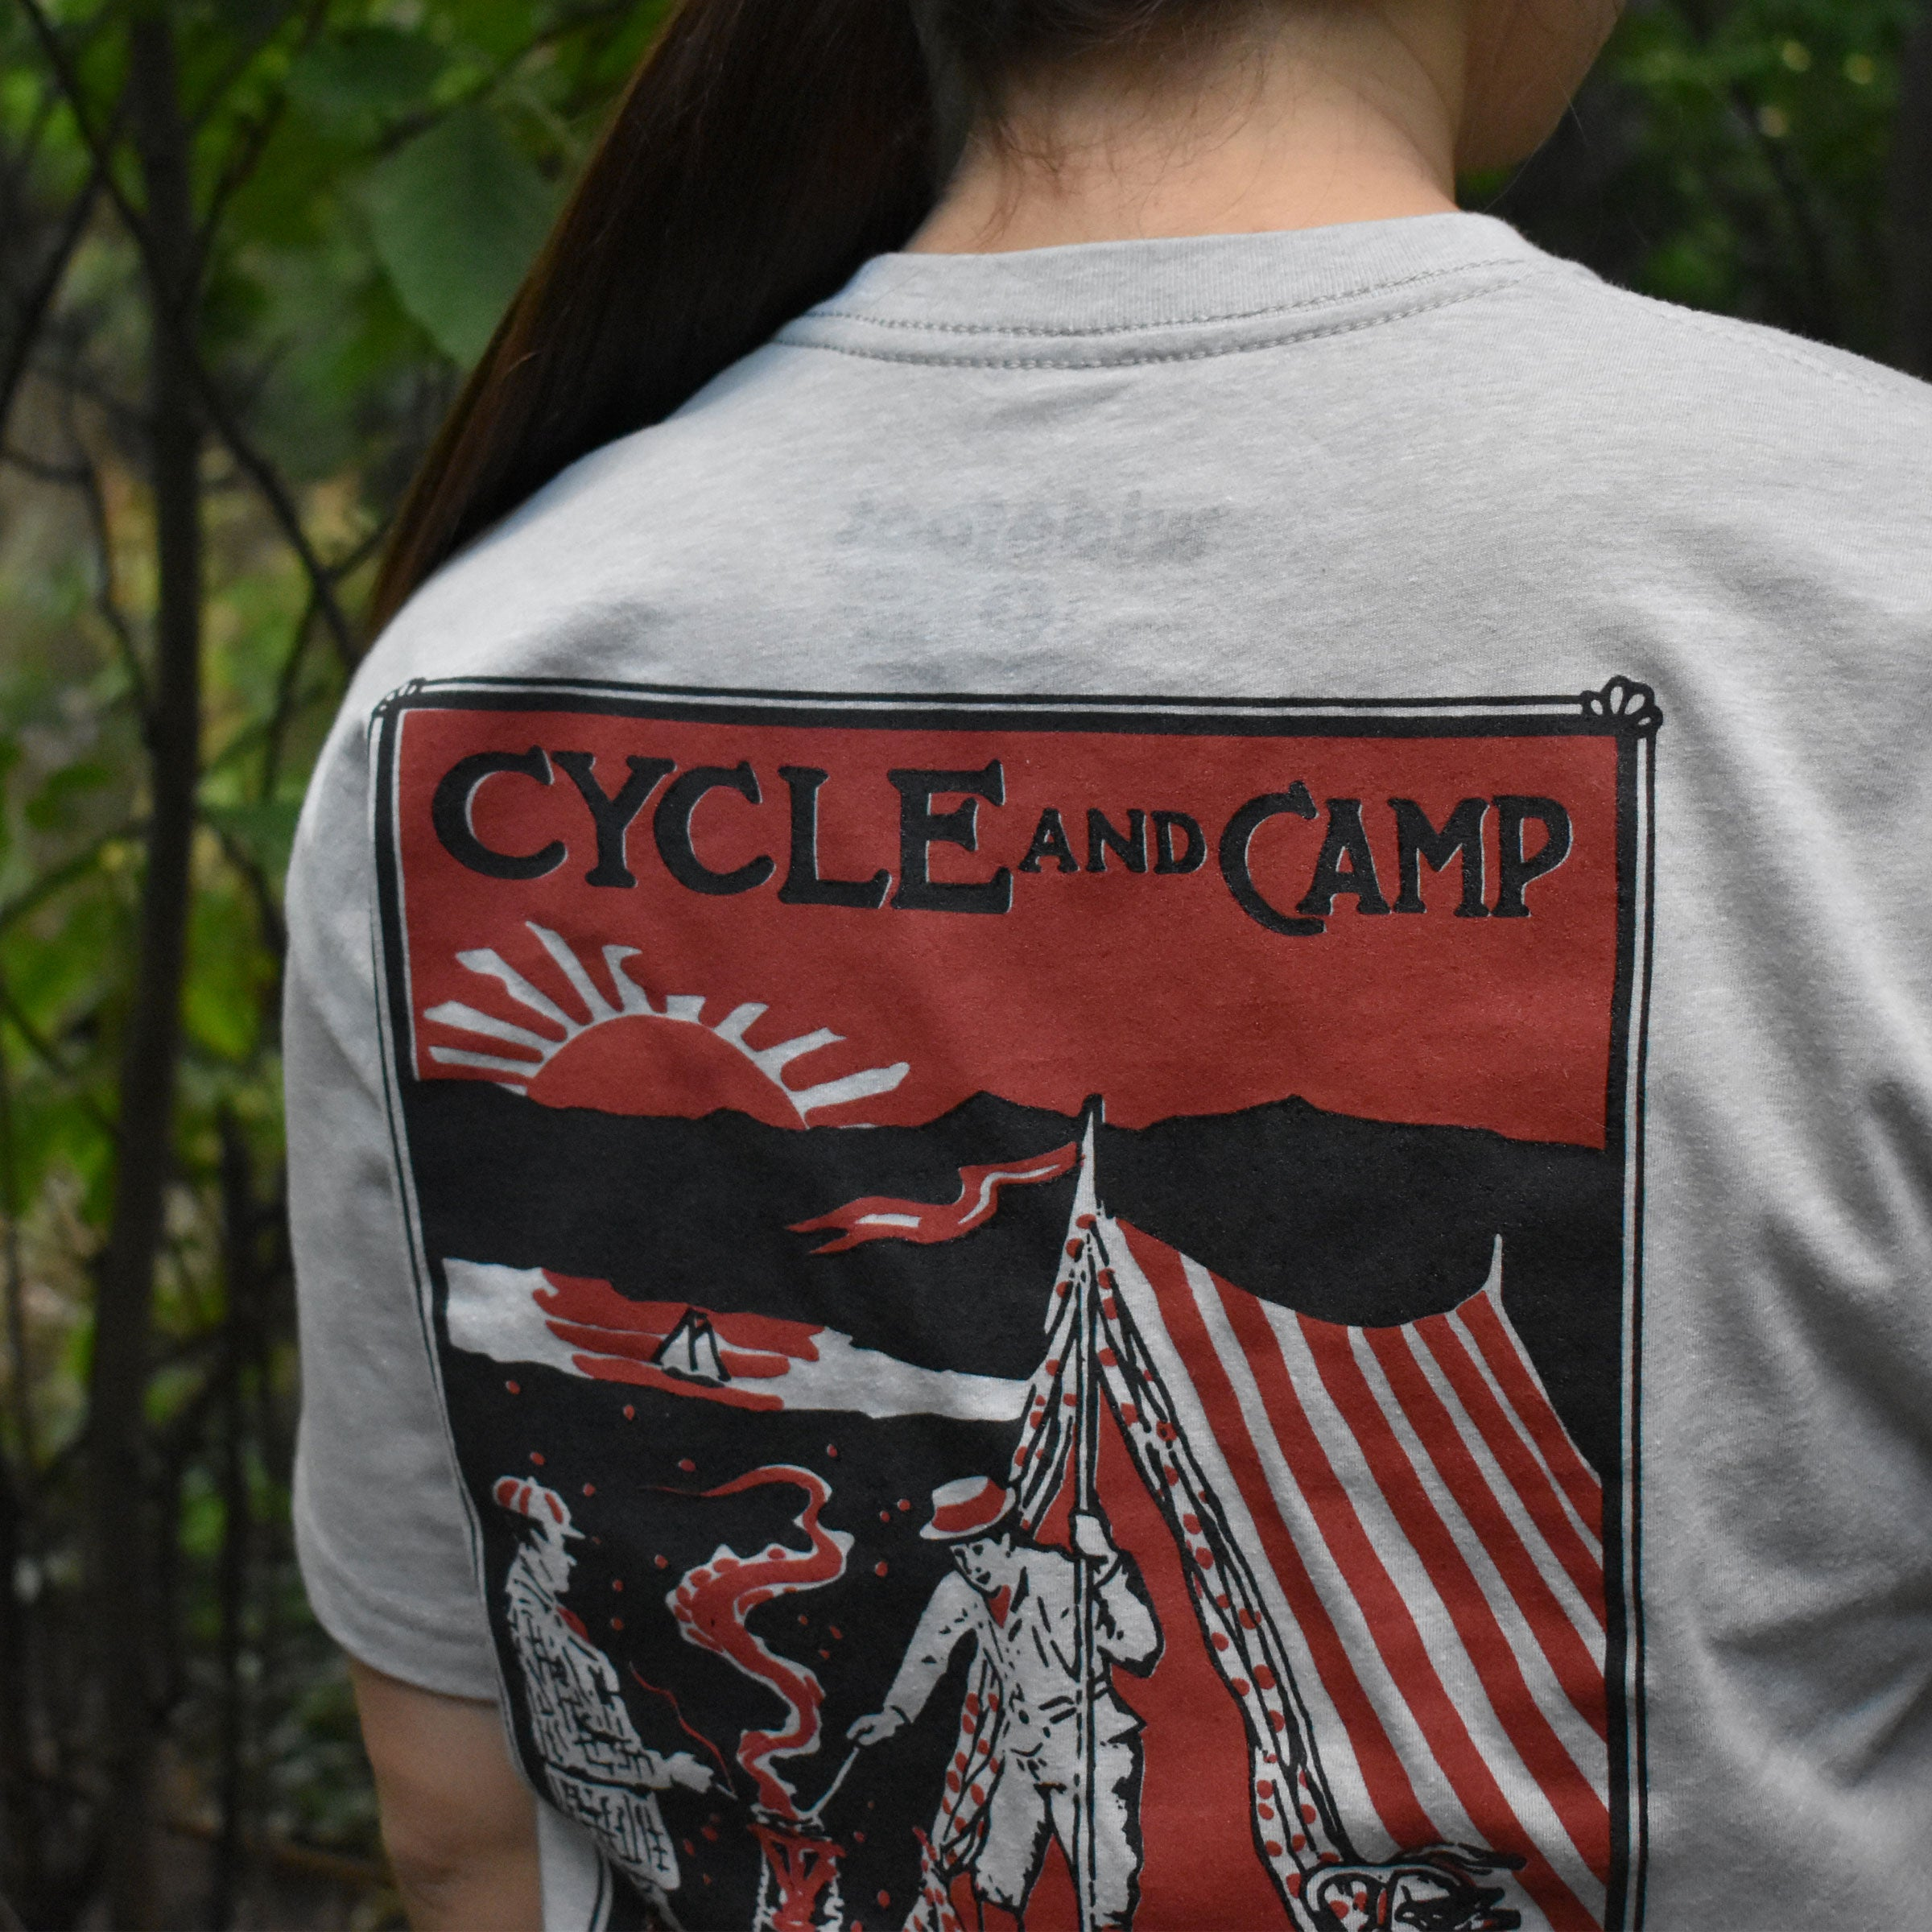 Cycle and Camp T-Shirt, Small